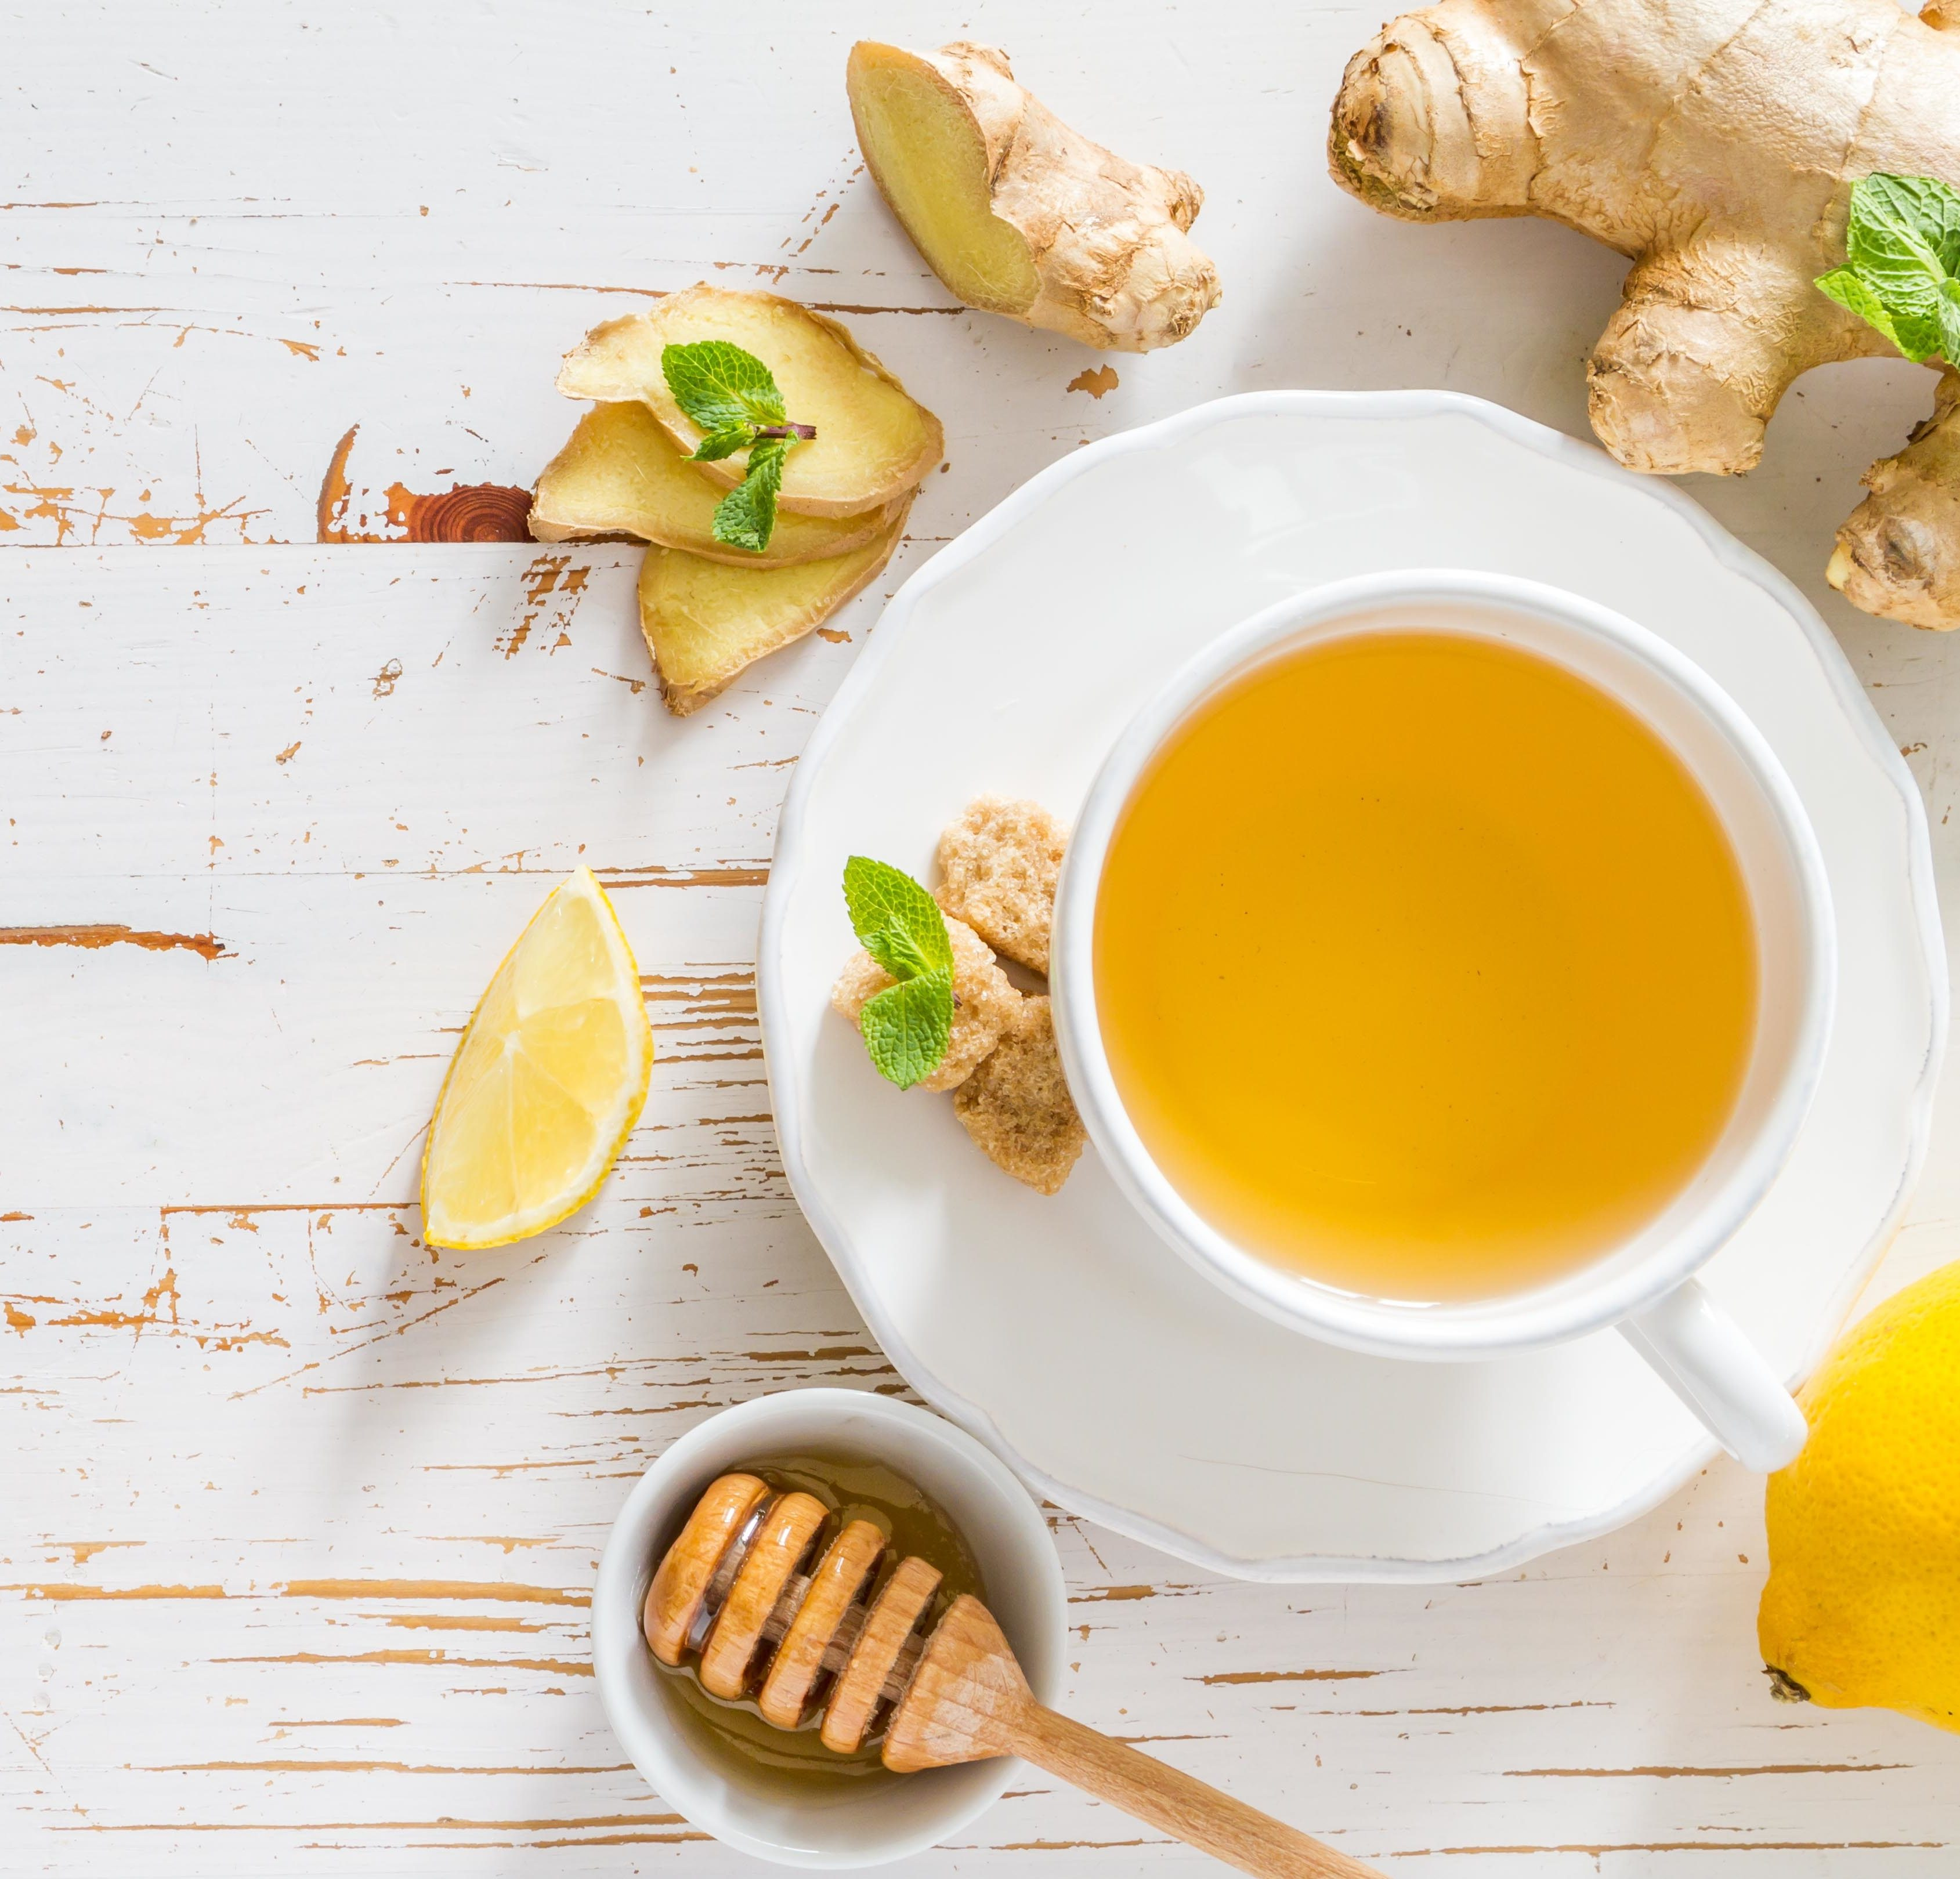 The Ginger Teacup